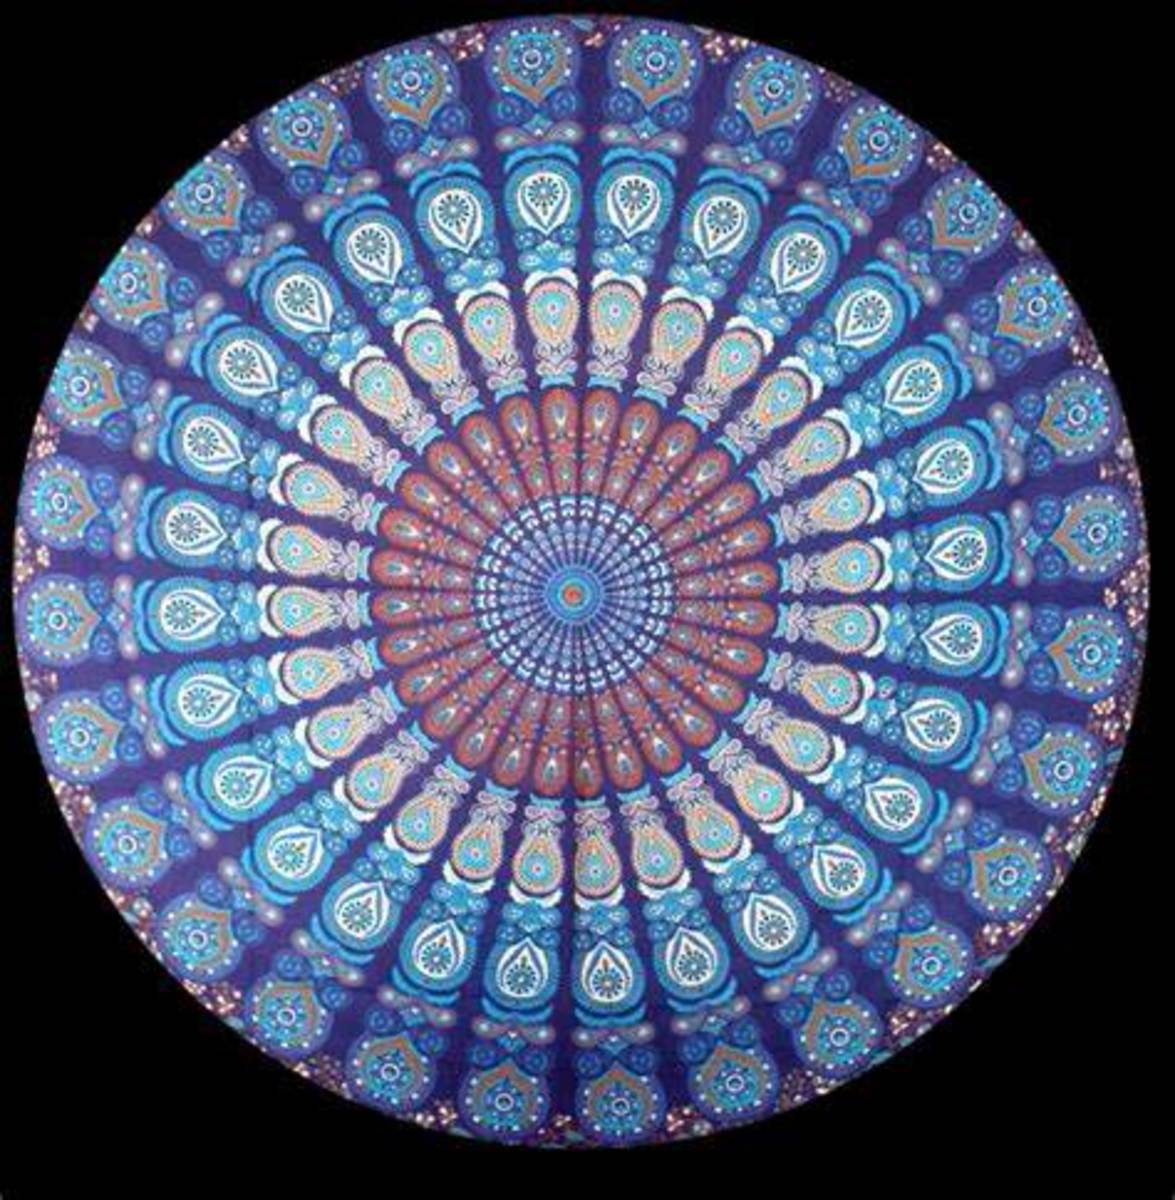 There are endless designs that can be created in the mandala design